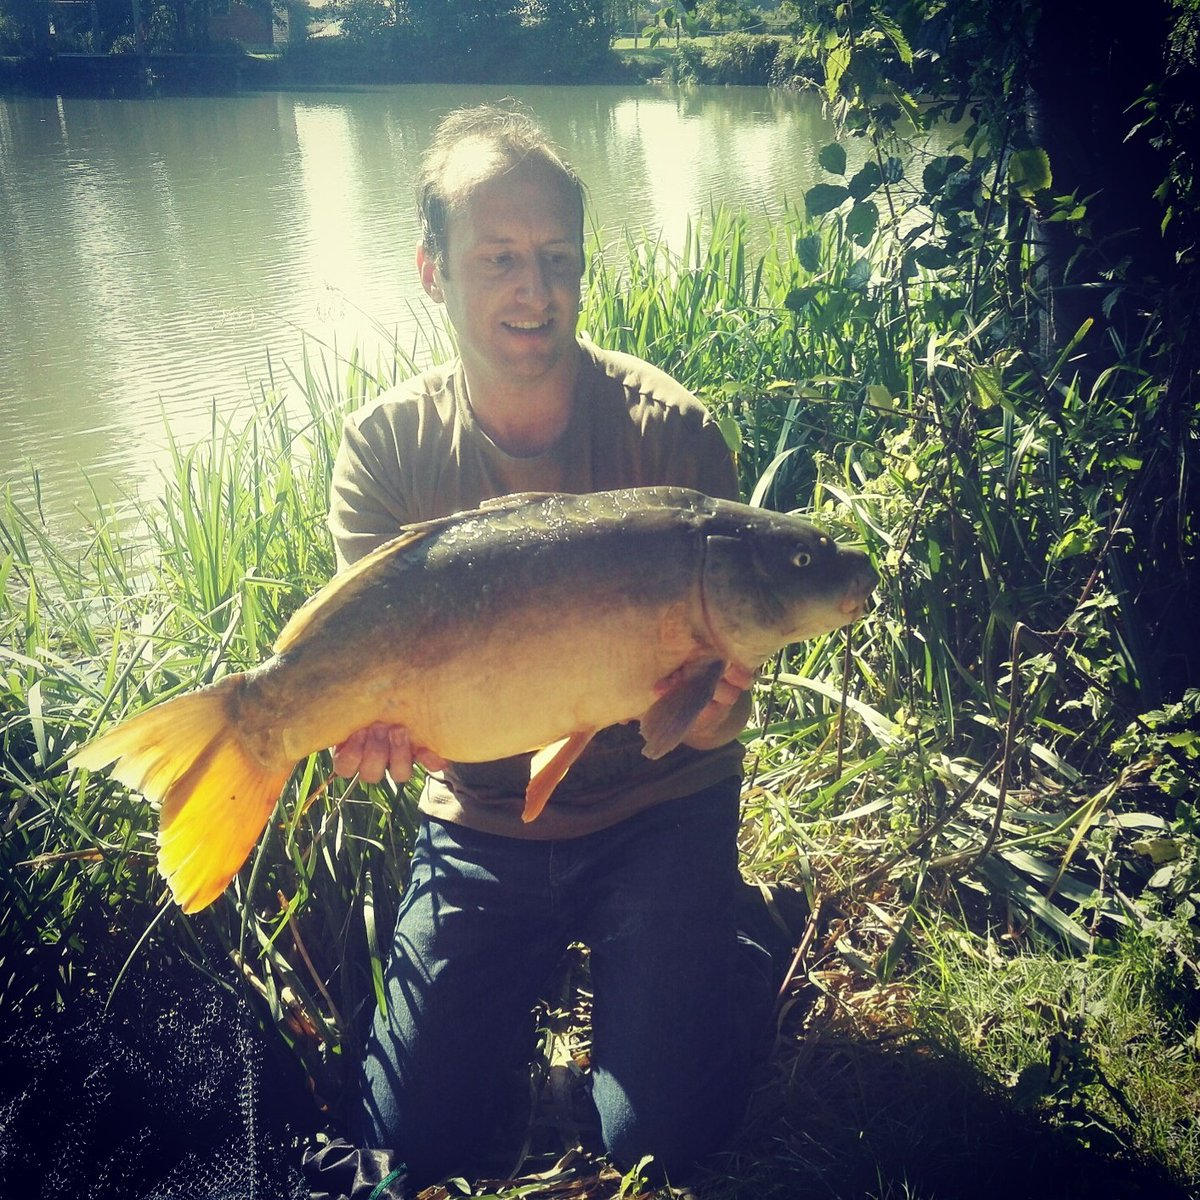 #CarpFishing #MirrorCarp 18lb #TightLines @StickyOfficial #TheKrill https://t.co/OHi16hu5HN